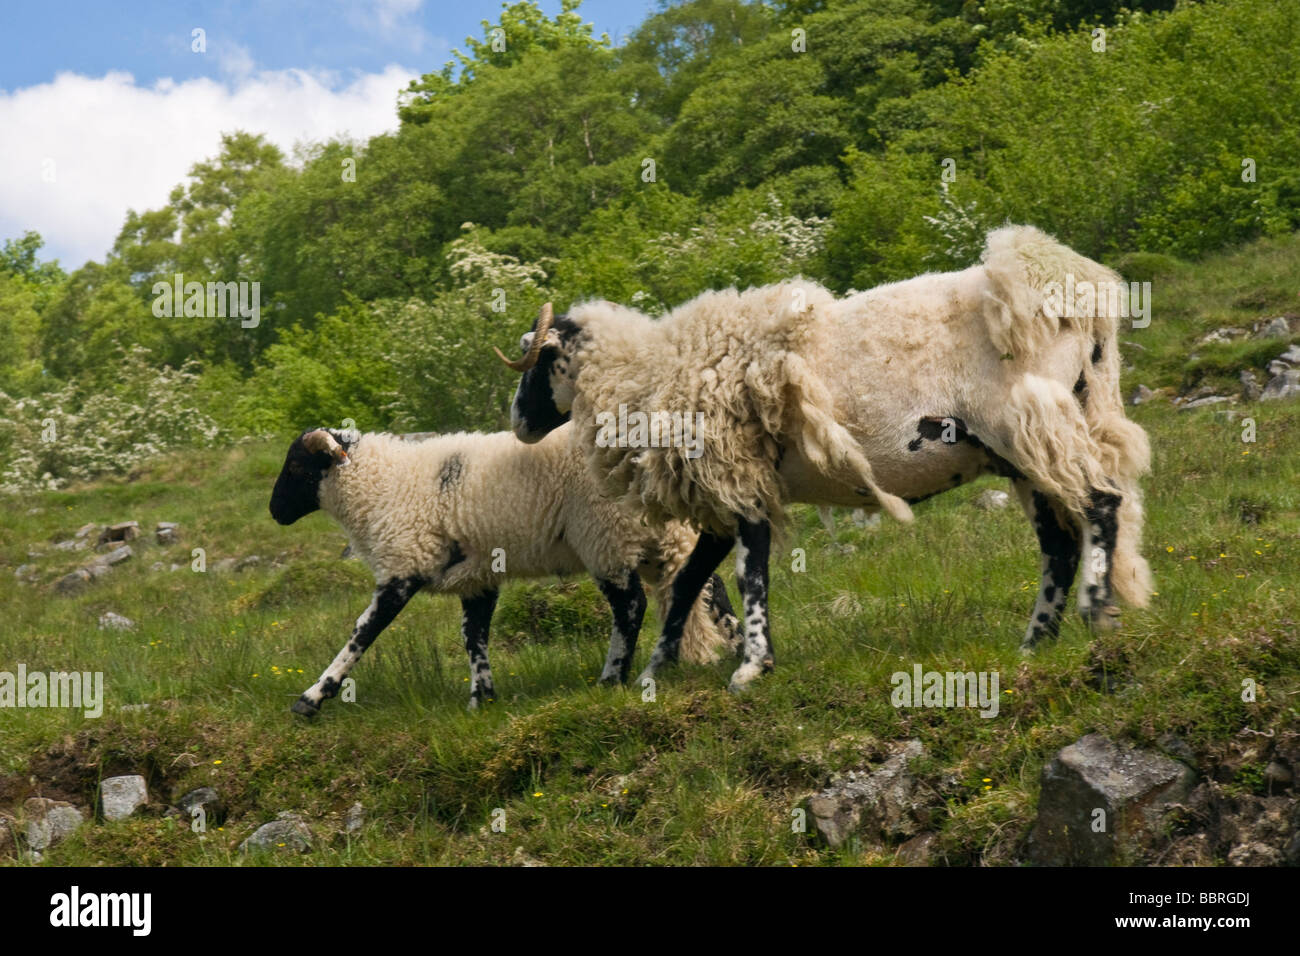 Ewe with lamb. Unclipped fleece on the ewe is beginning to strip off. - Stock Image